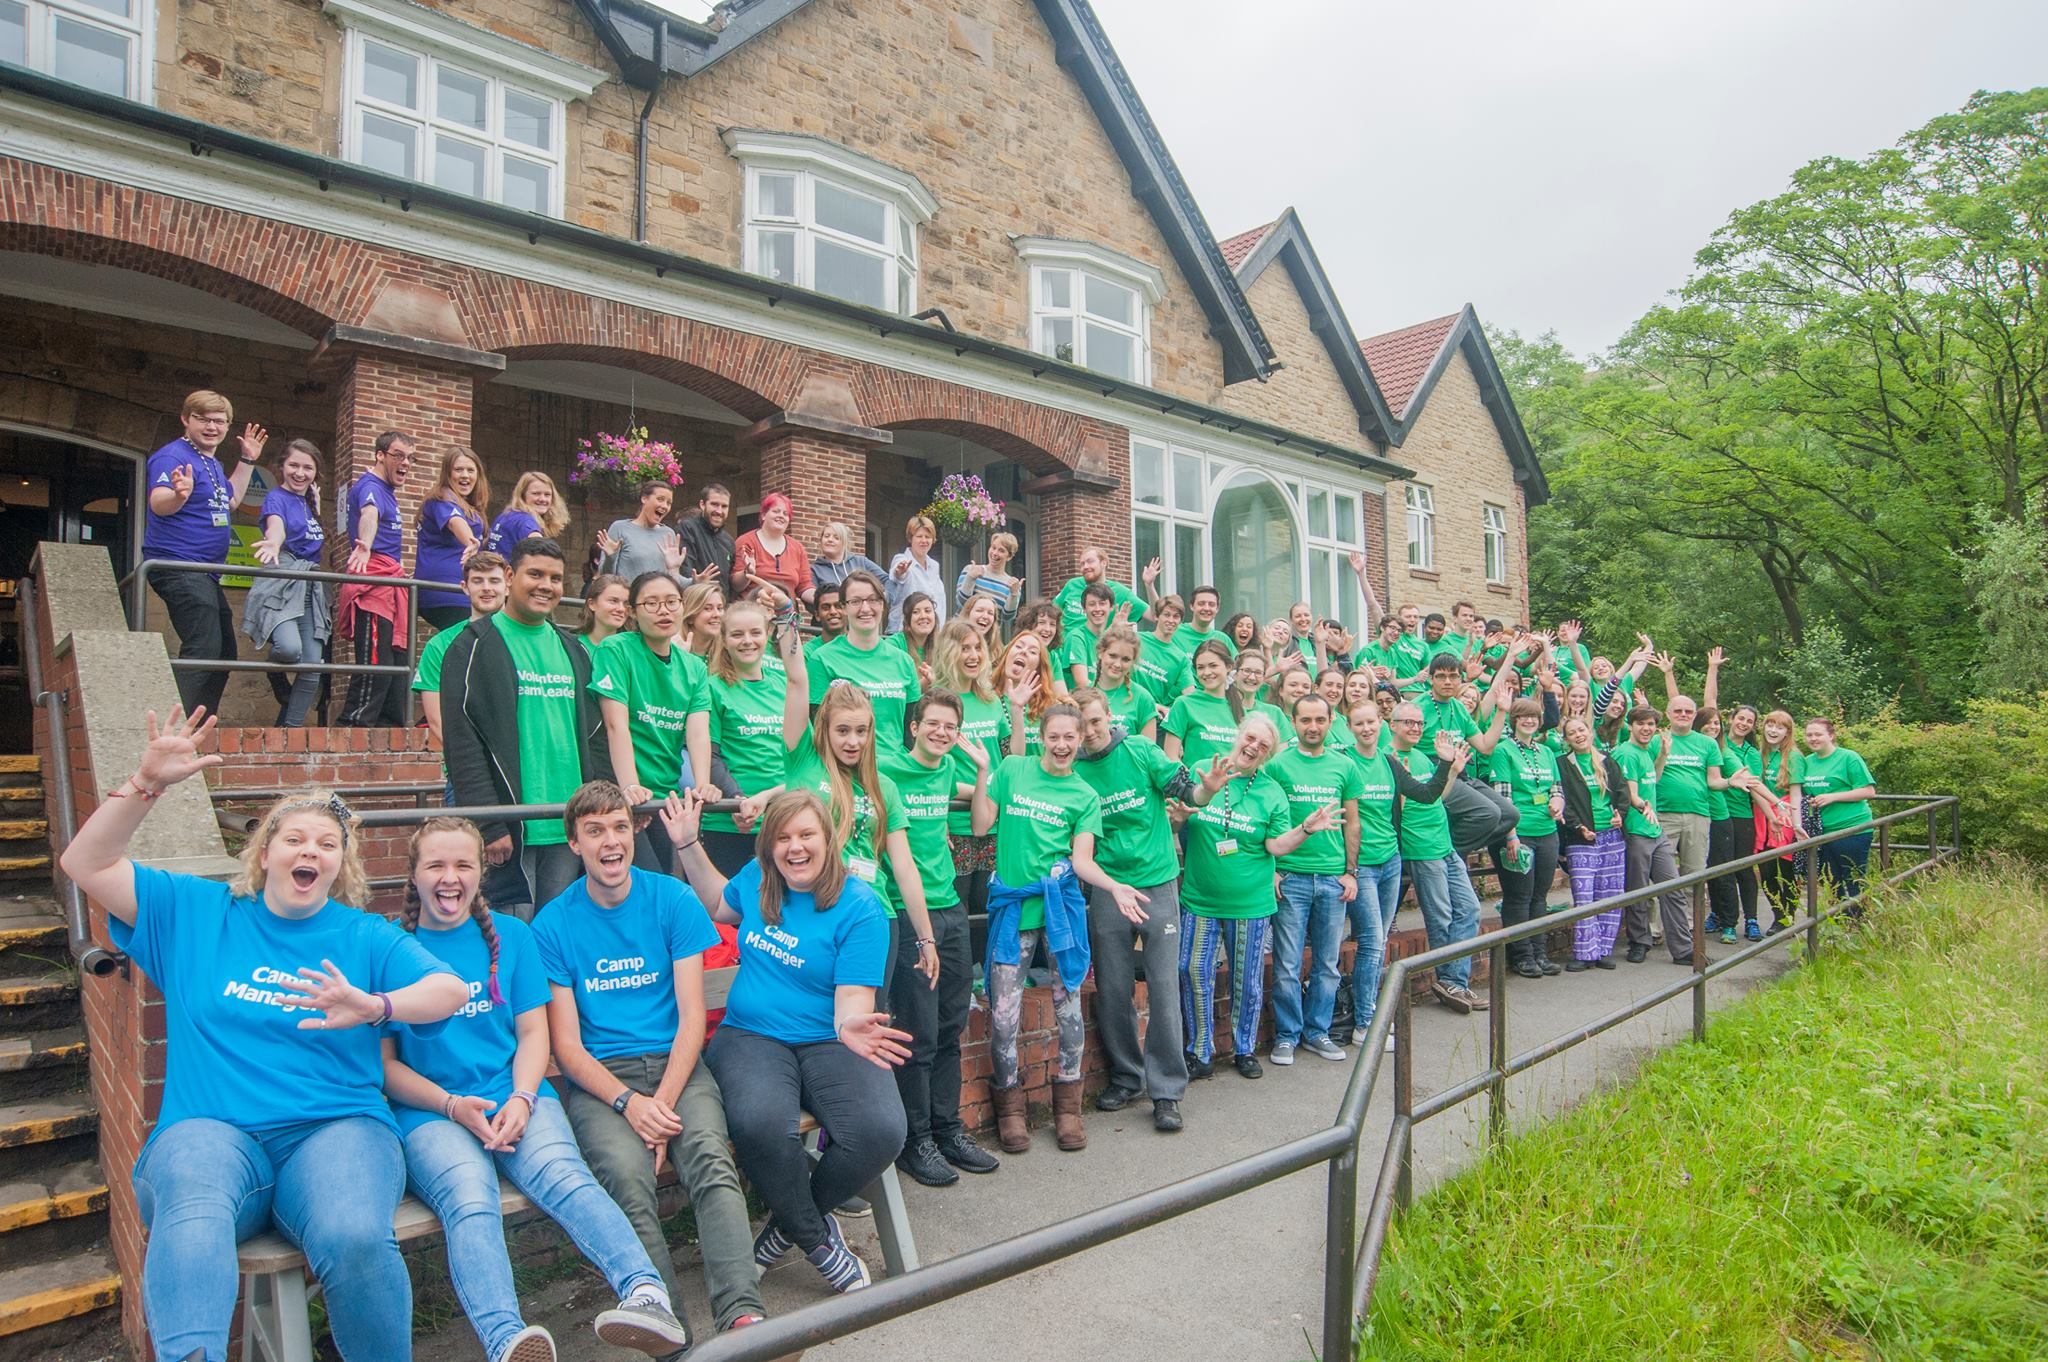 Volunteer at YHA Summer Camps for CV Boosting Experience